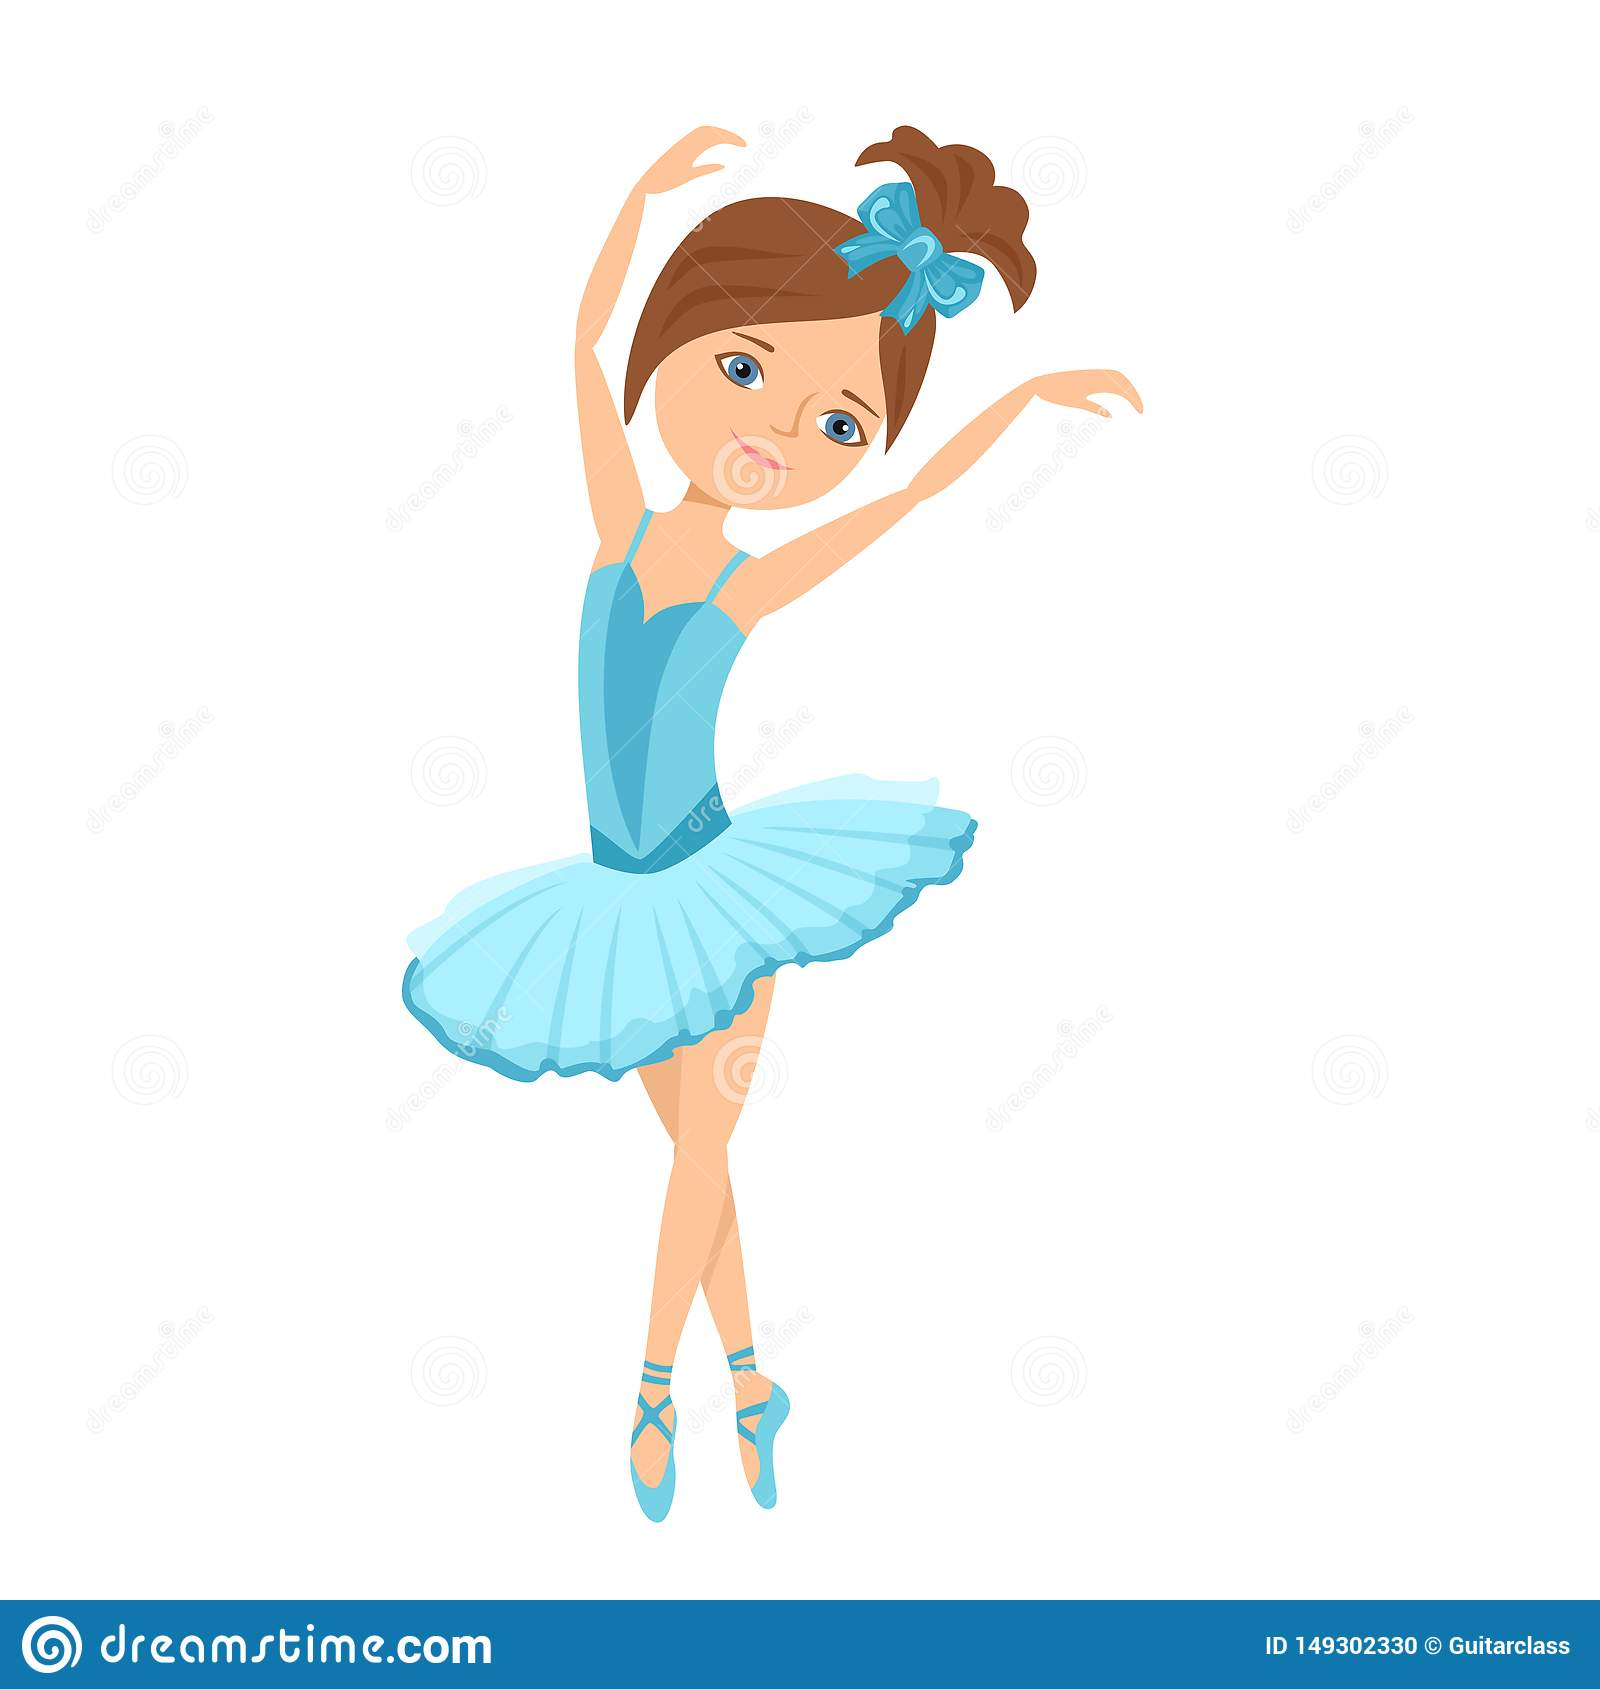 Ballerina In Blue Dress Vector Illustration Of A Dancing Child In Cartoon Flat Style Stock Vector Illustration Of Blue Flat 149302330